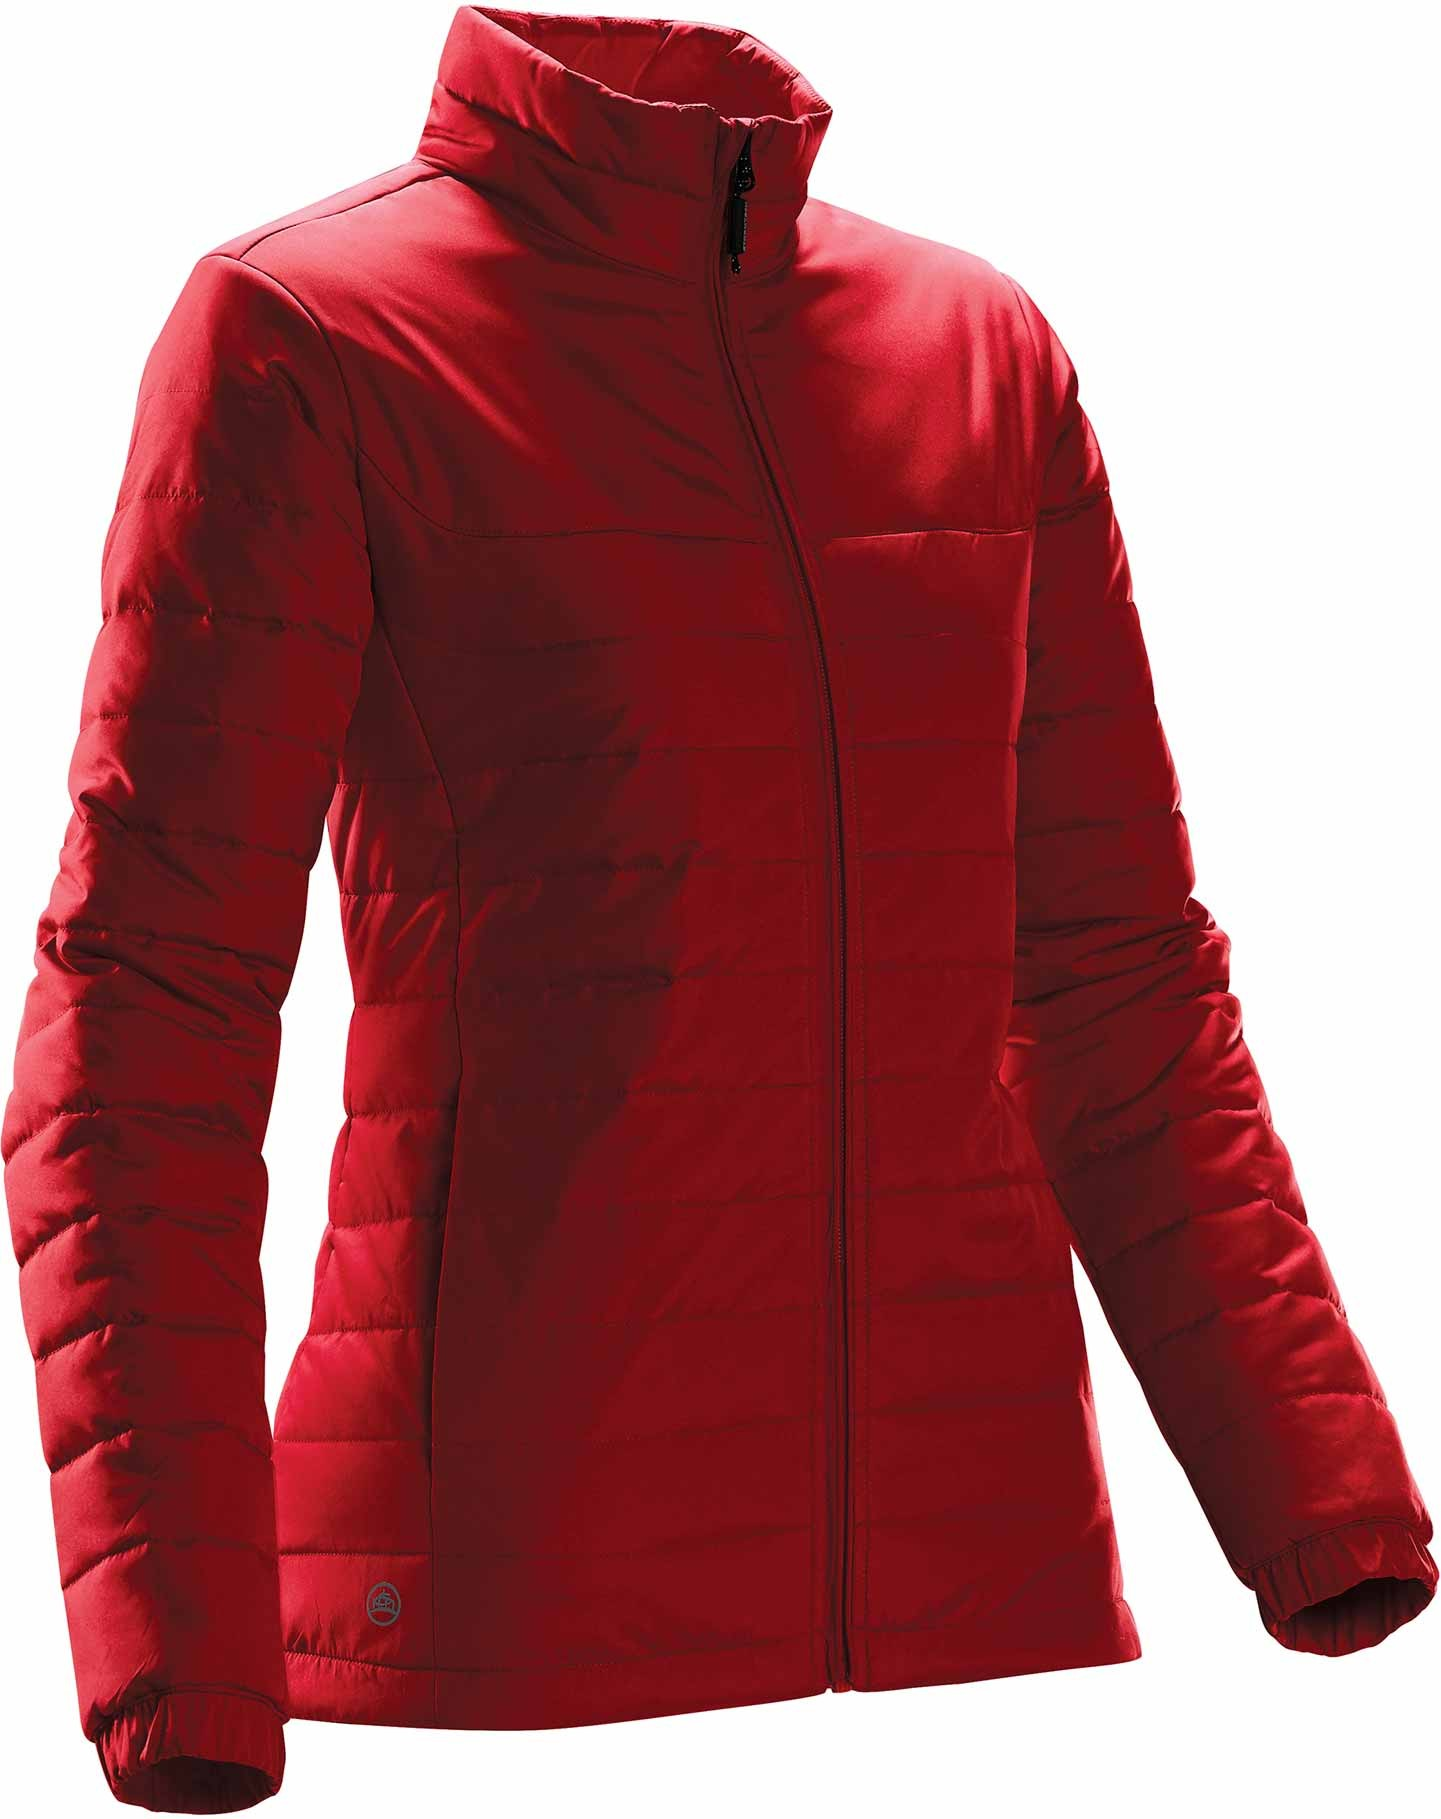 Stormtech QX-1W - Women's Nautilus Quilted Jacket